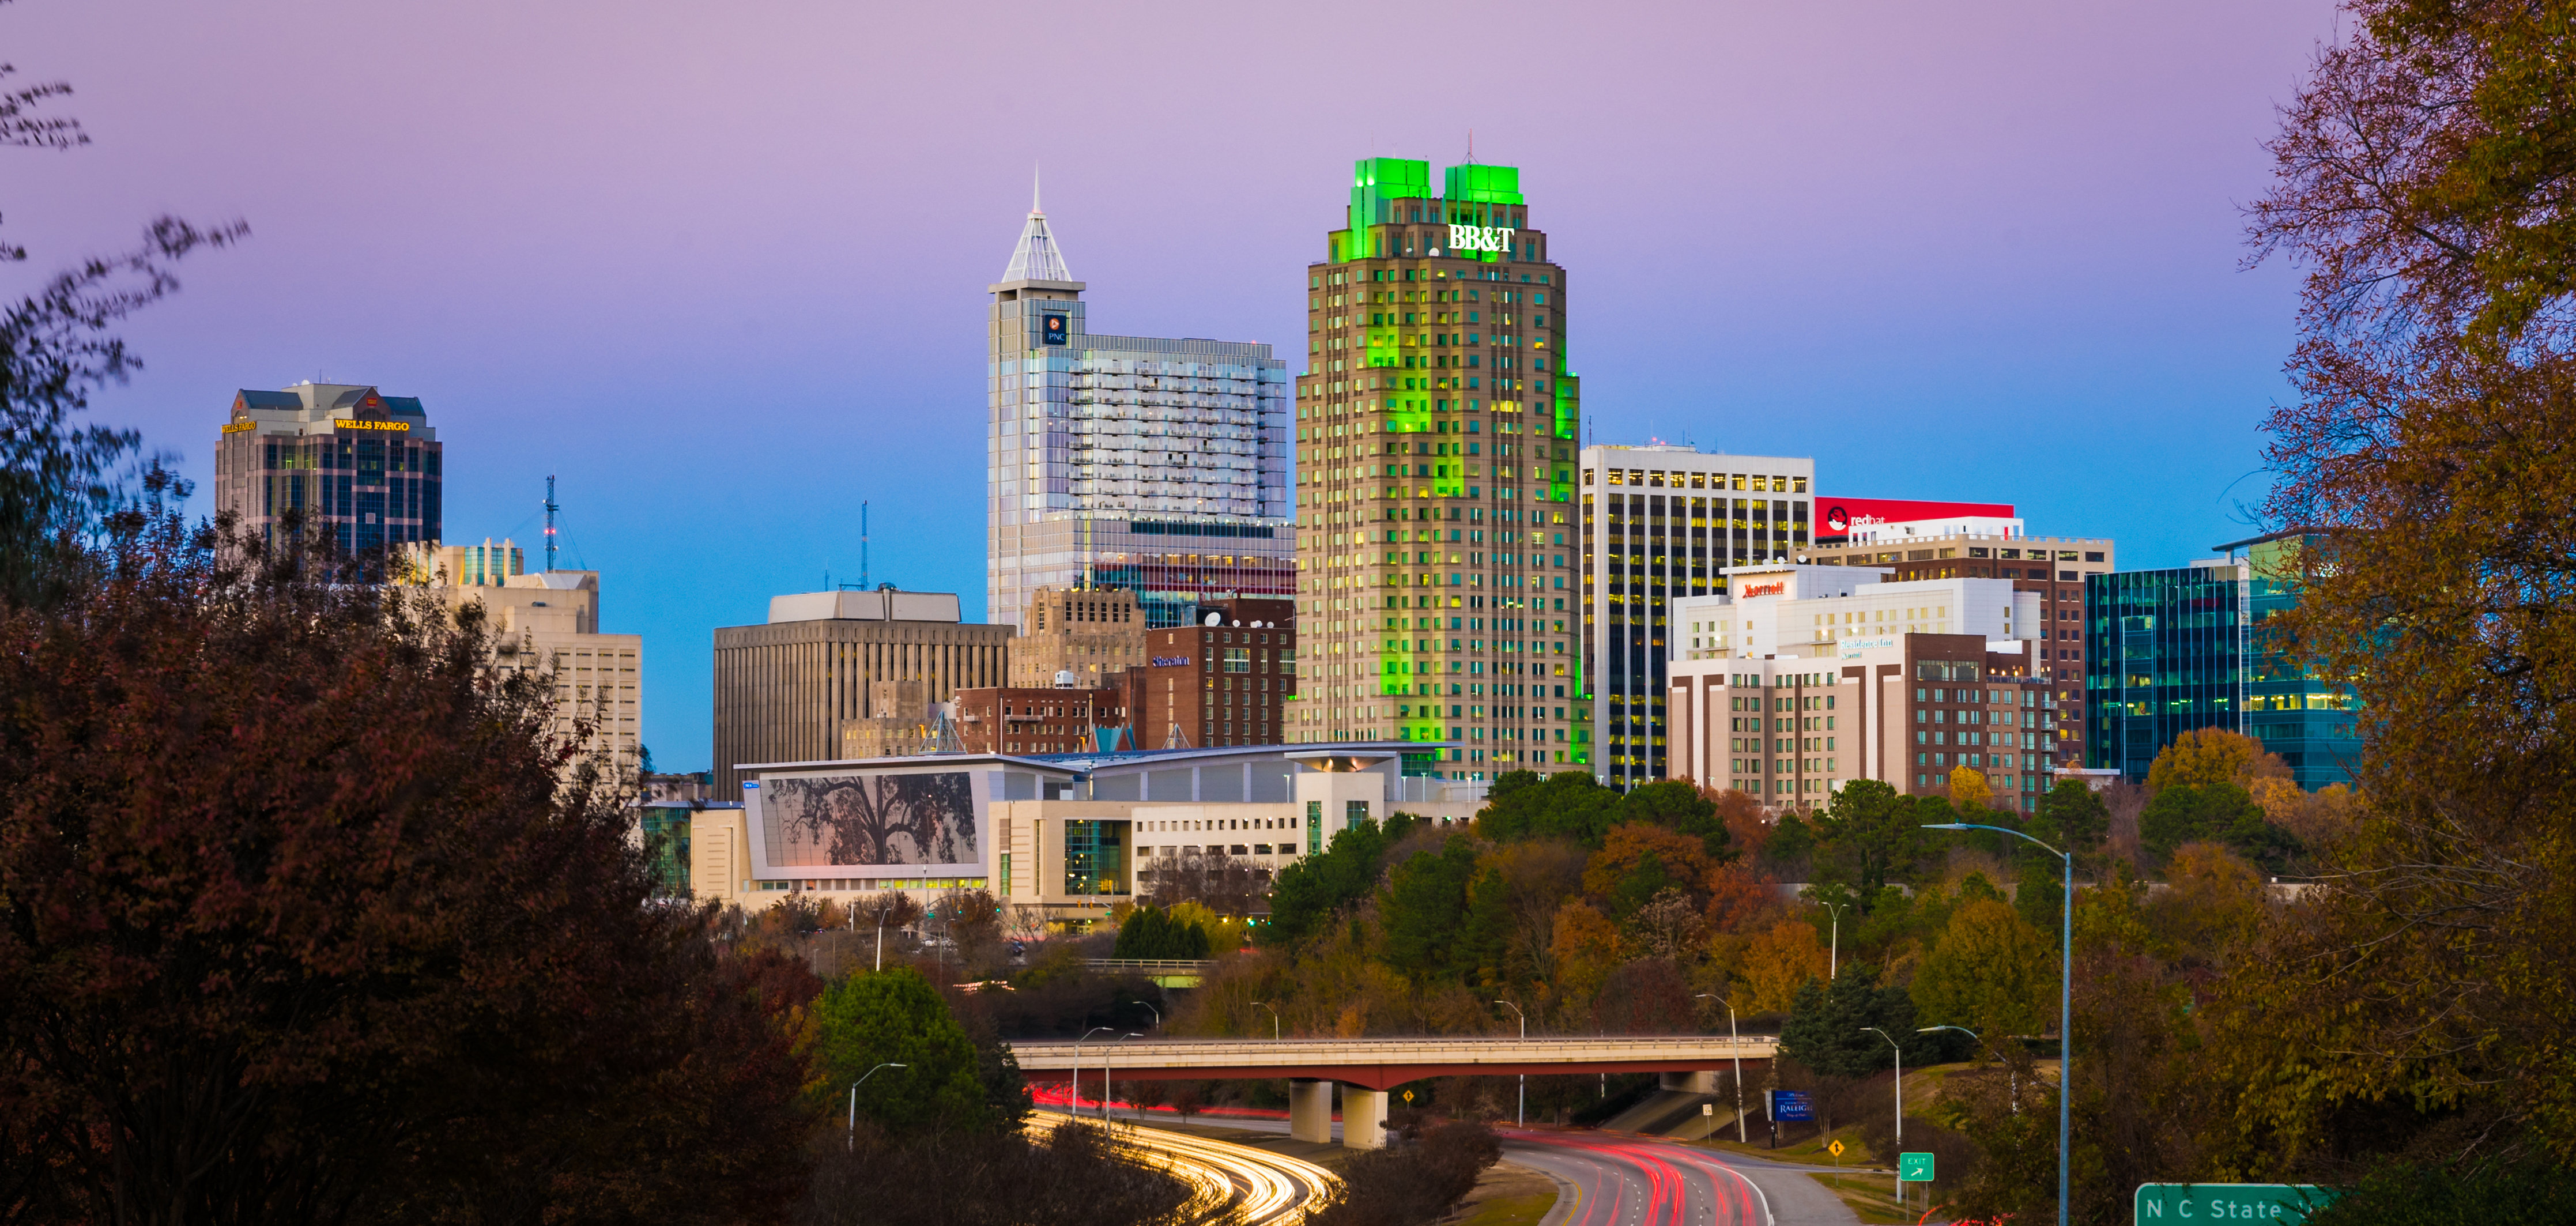 Raleigh, N.C., Maps | Downtown Raleigh Map on